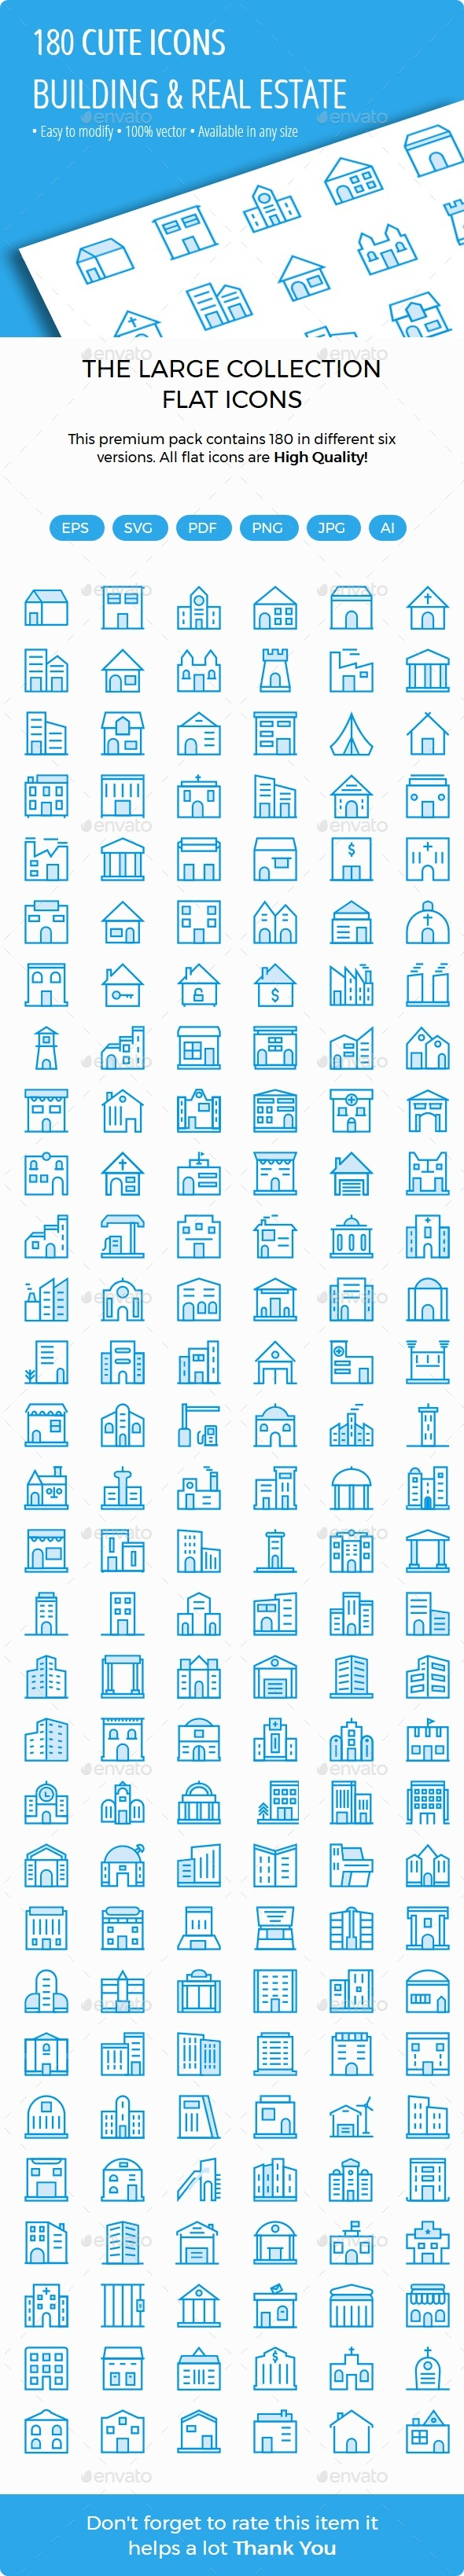 Building and Real Estate Cute Style Icons - Buildings Objects